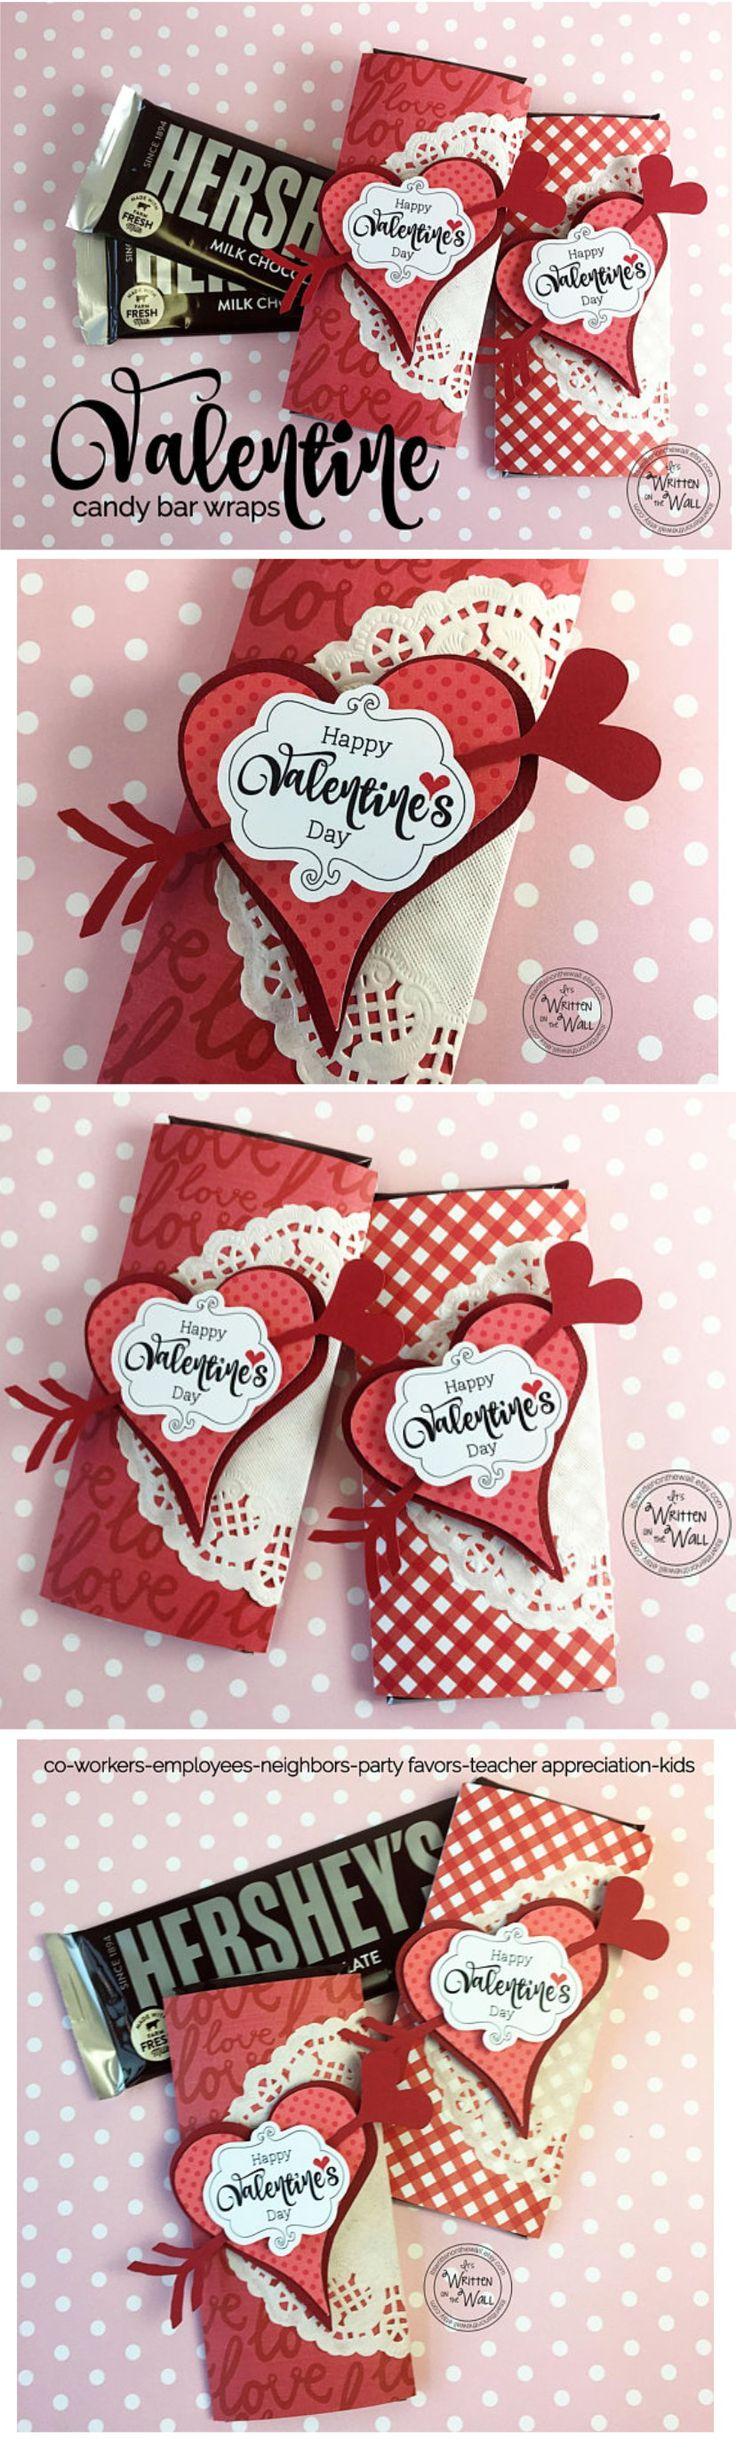 Valentines Day Candy Bar Wrappers-Co-Worker treats-Employee gifts, Party Favors,…